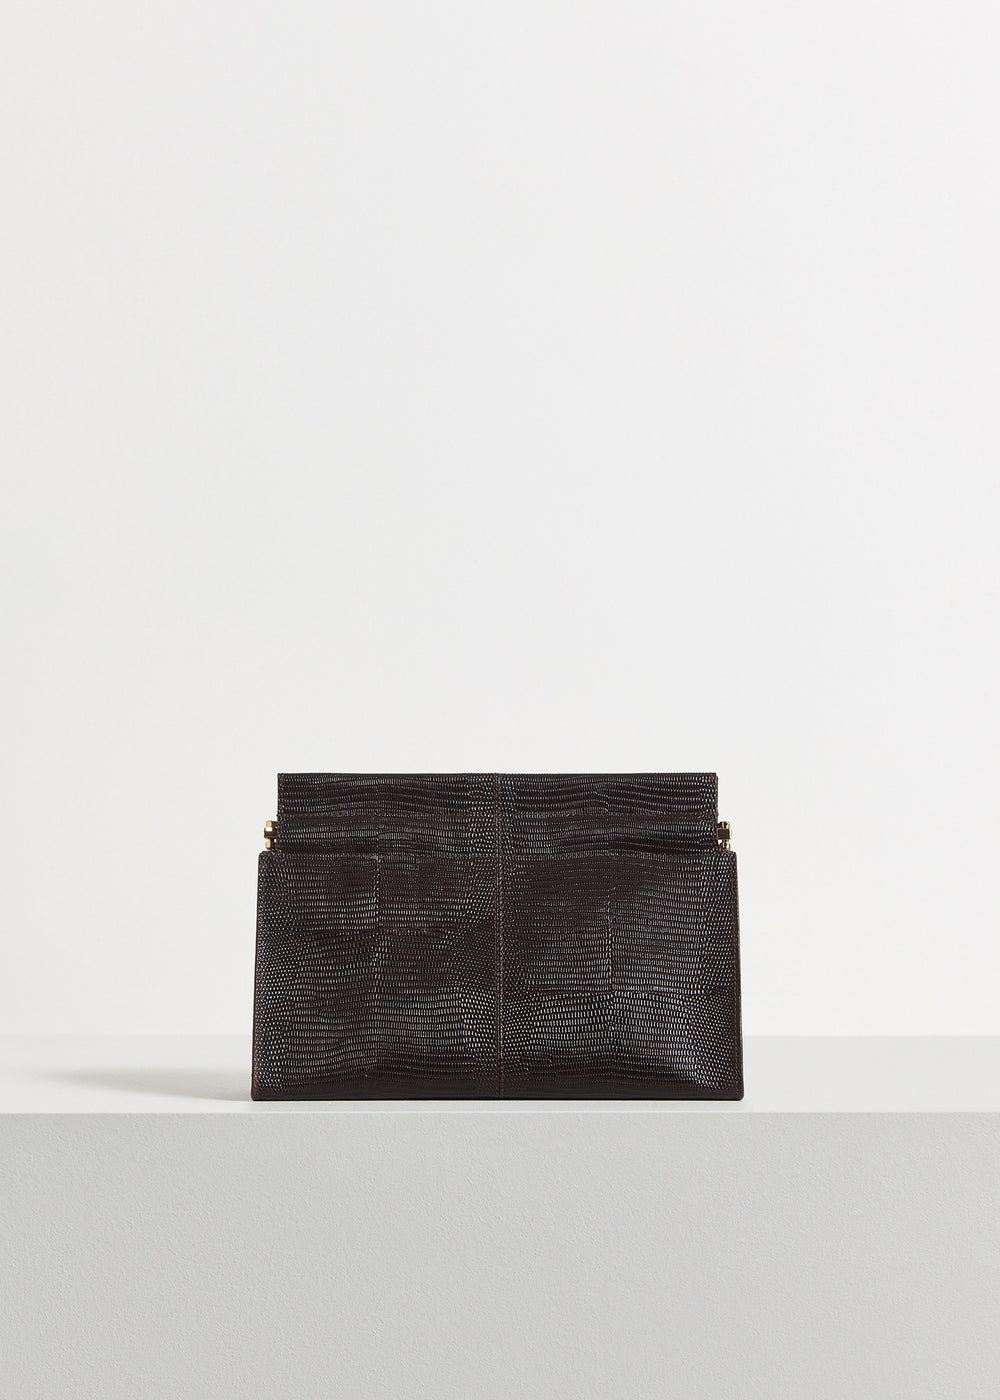 Clutch in Embossed Leather - Black in Dark Brown by Co Collections